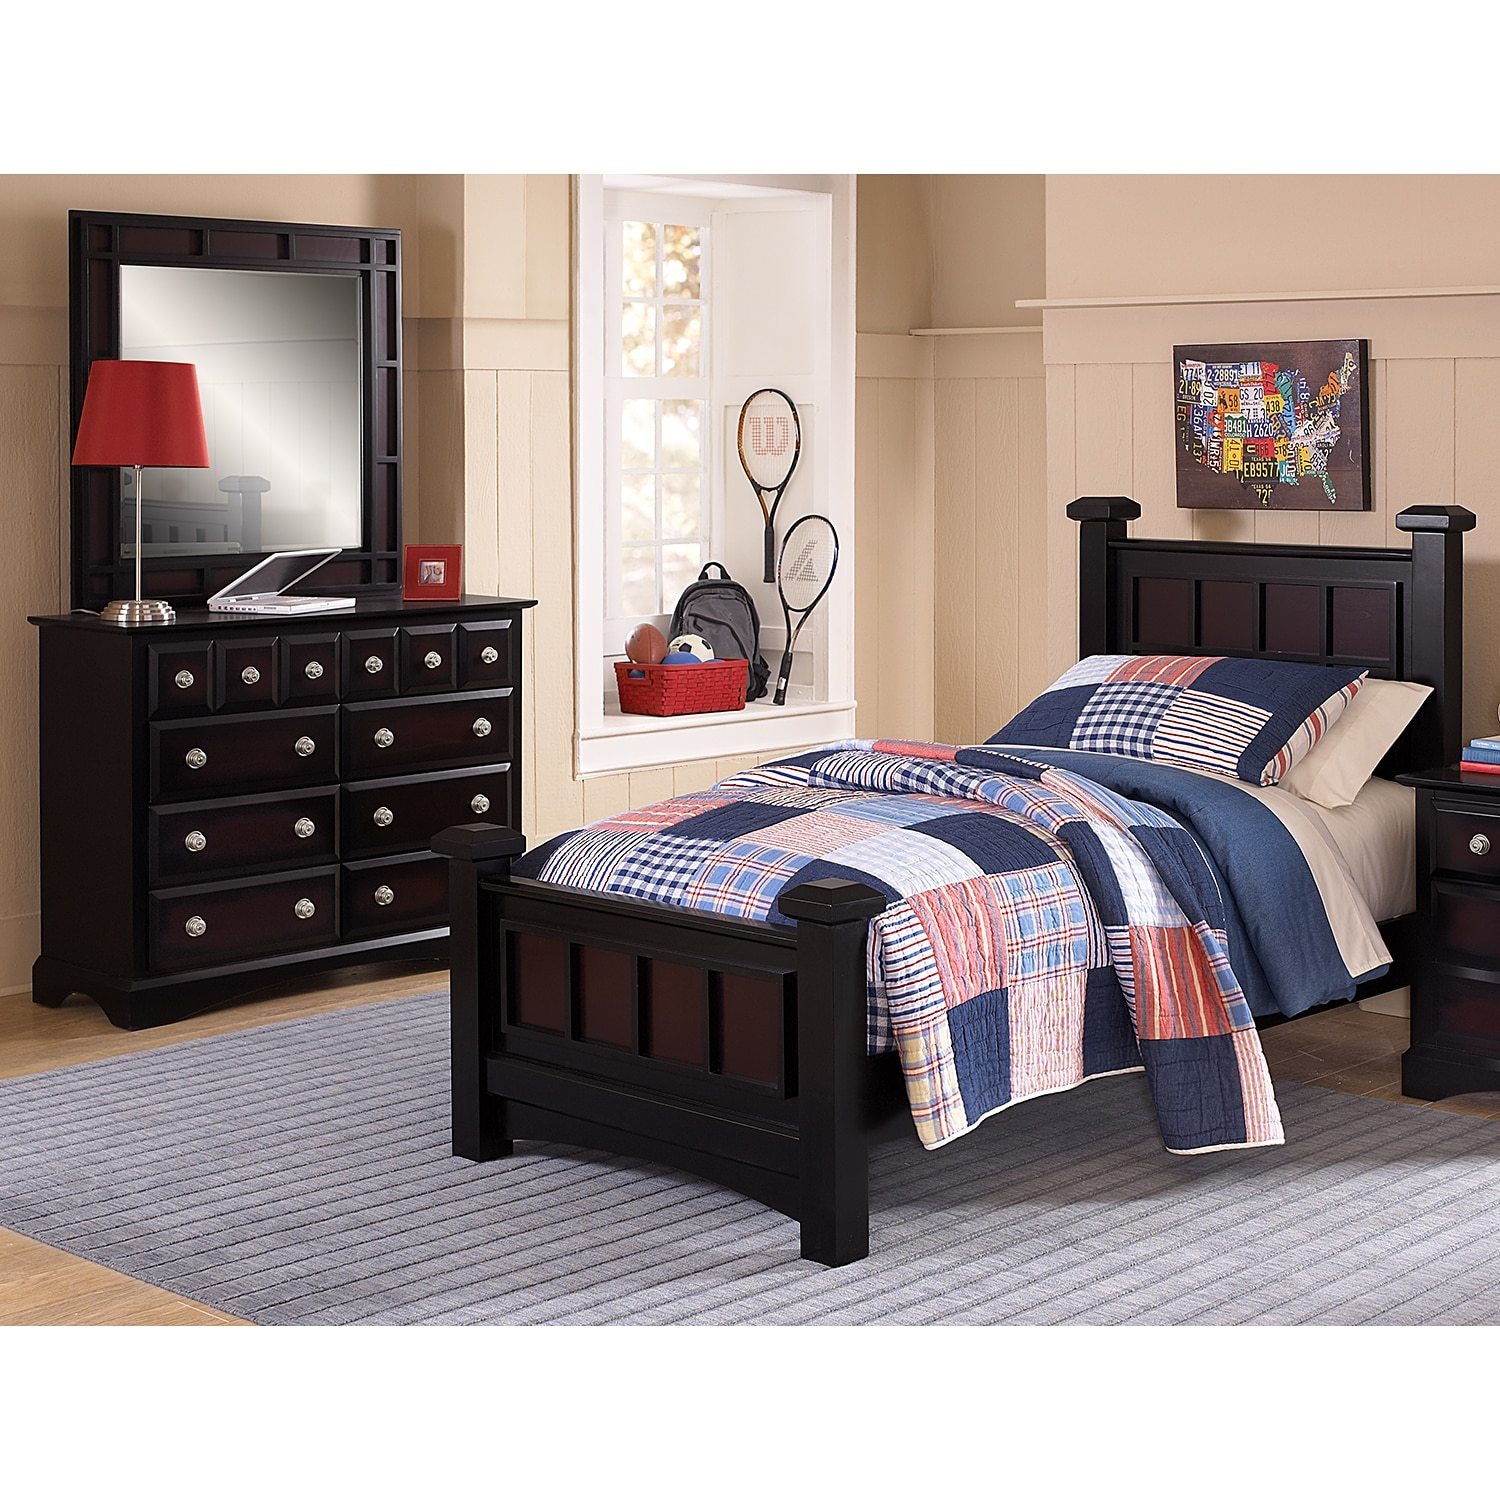 Winchester 5 Piece Twin Bedroom Set   Black And Burnished Merlot